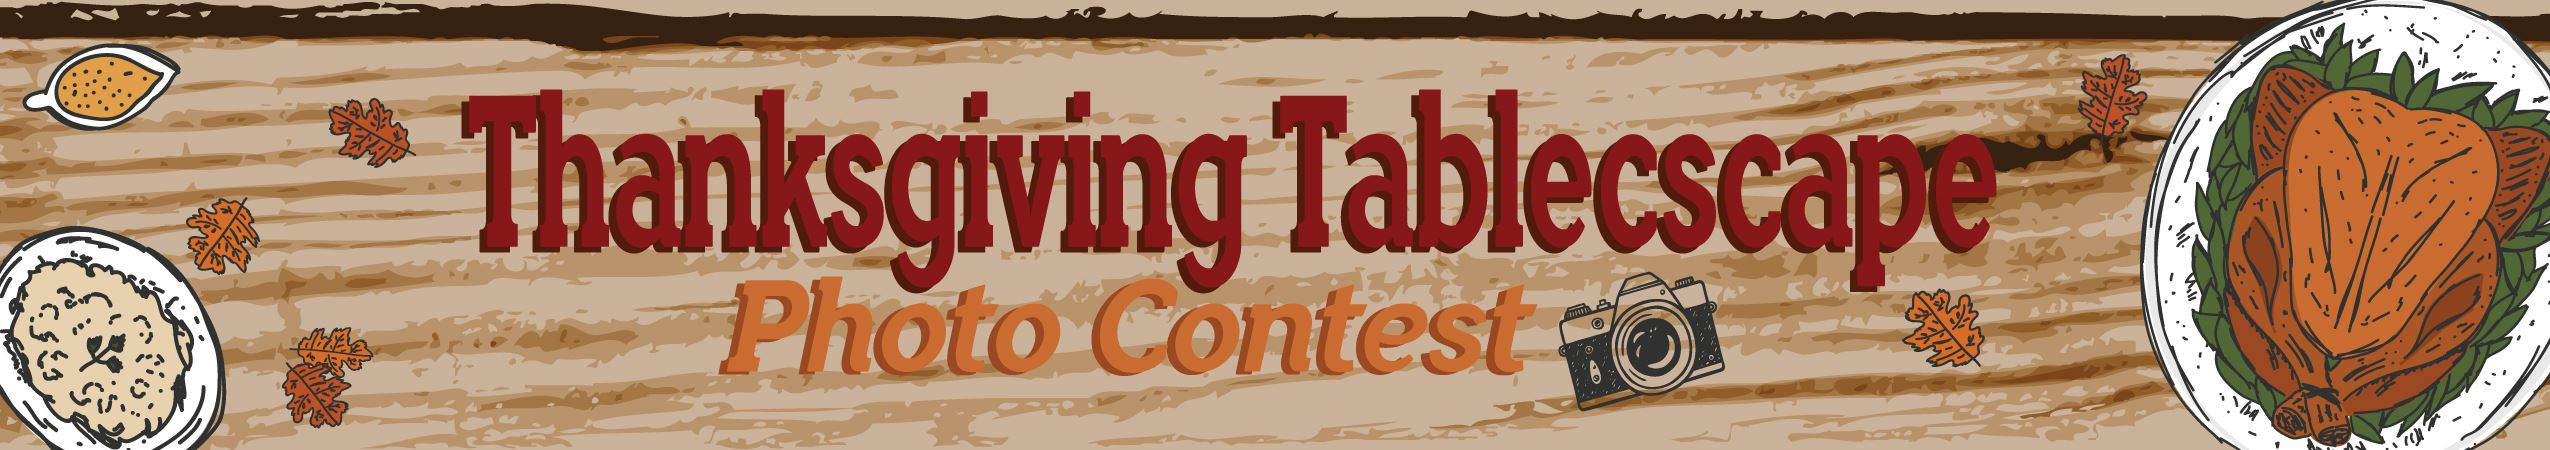 Thanksgiving-Tablescape-Contest-Web-Banner